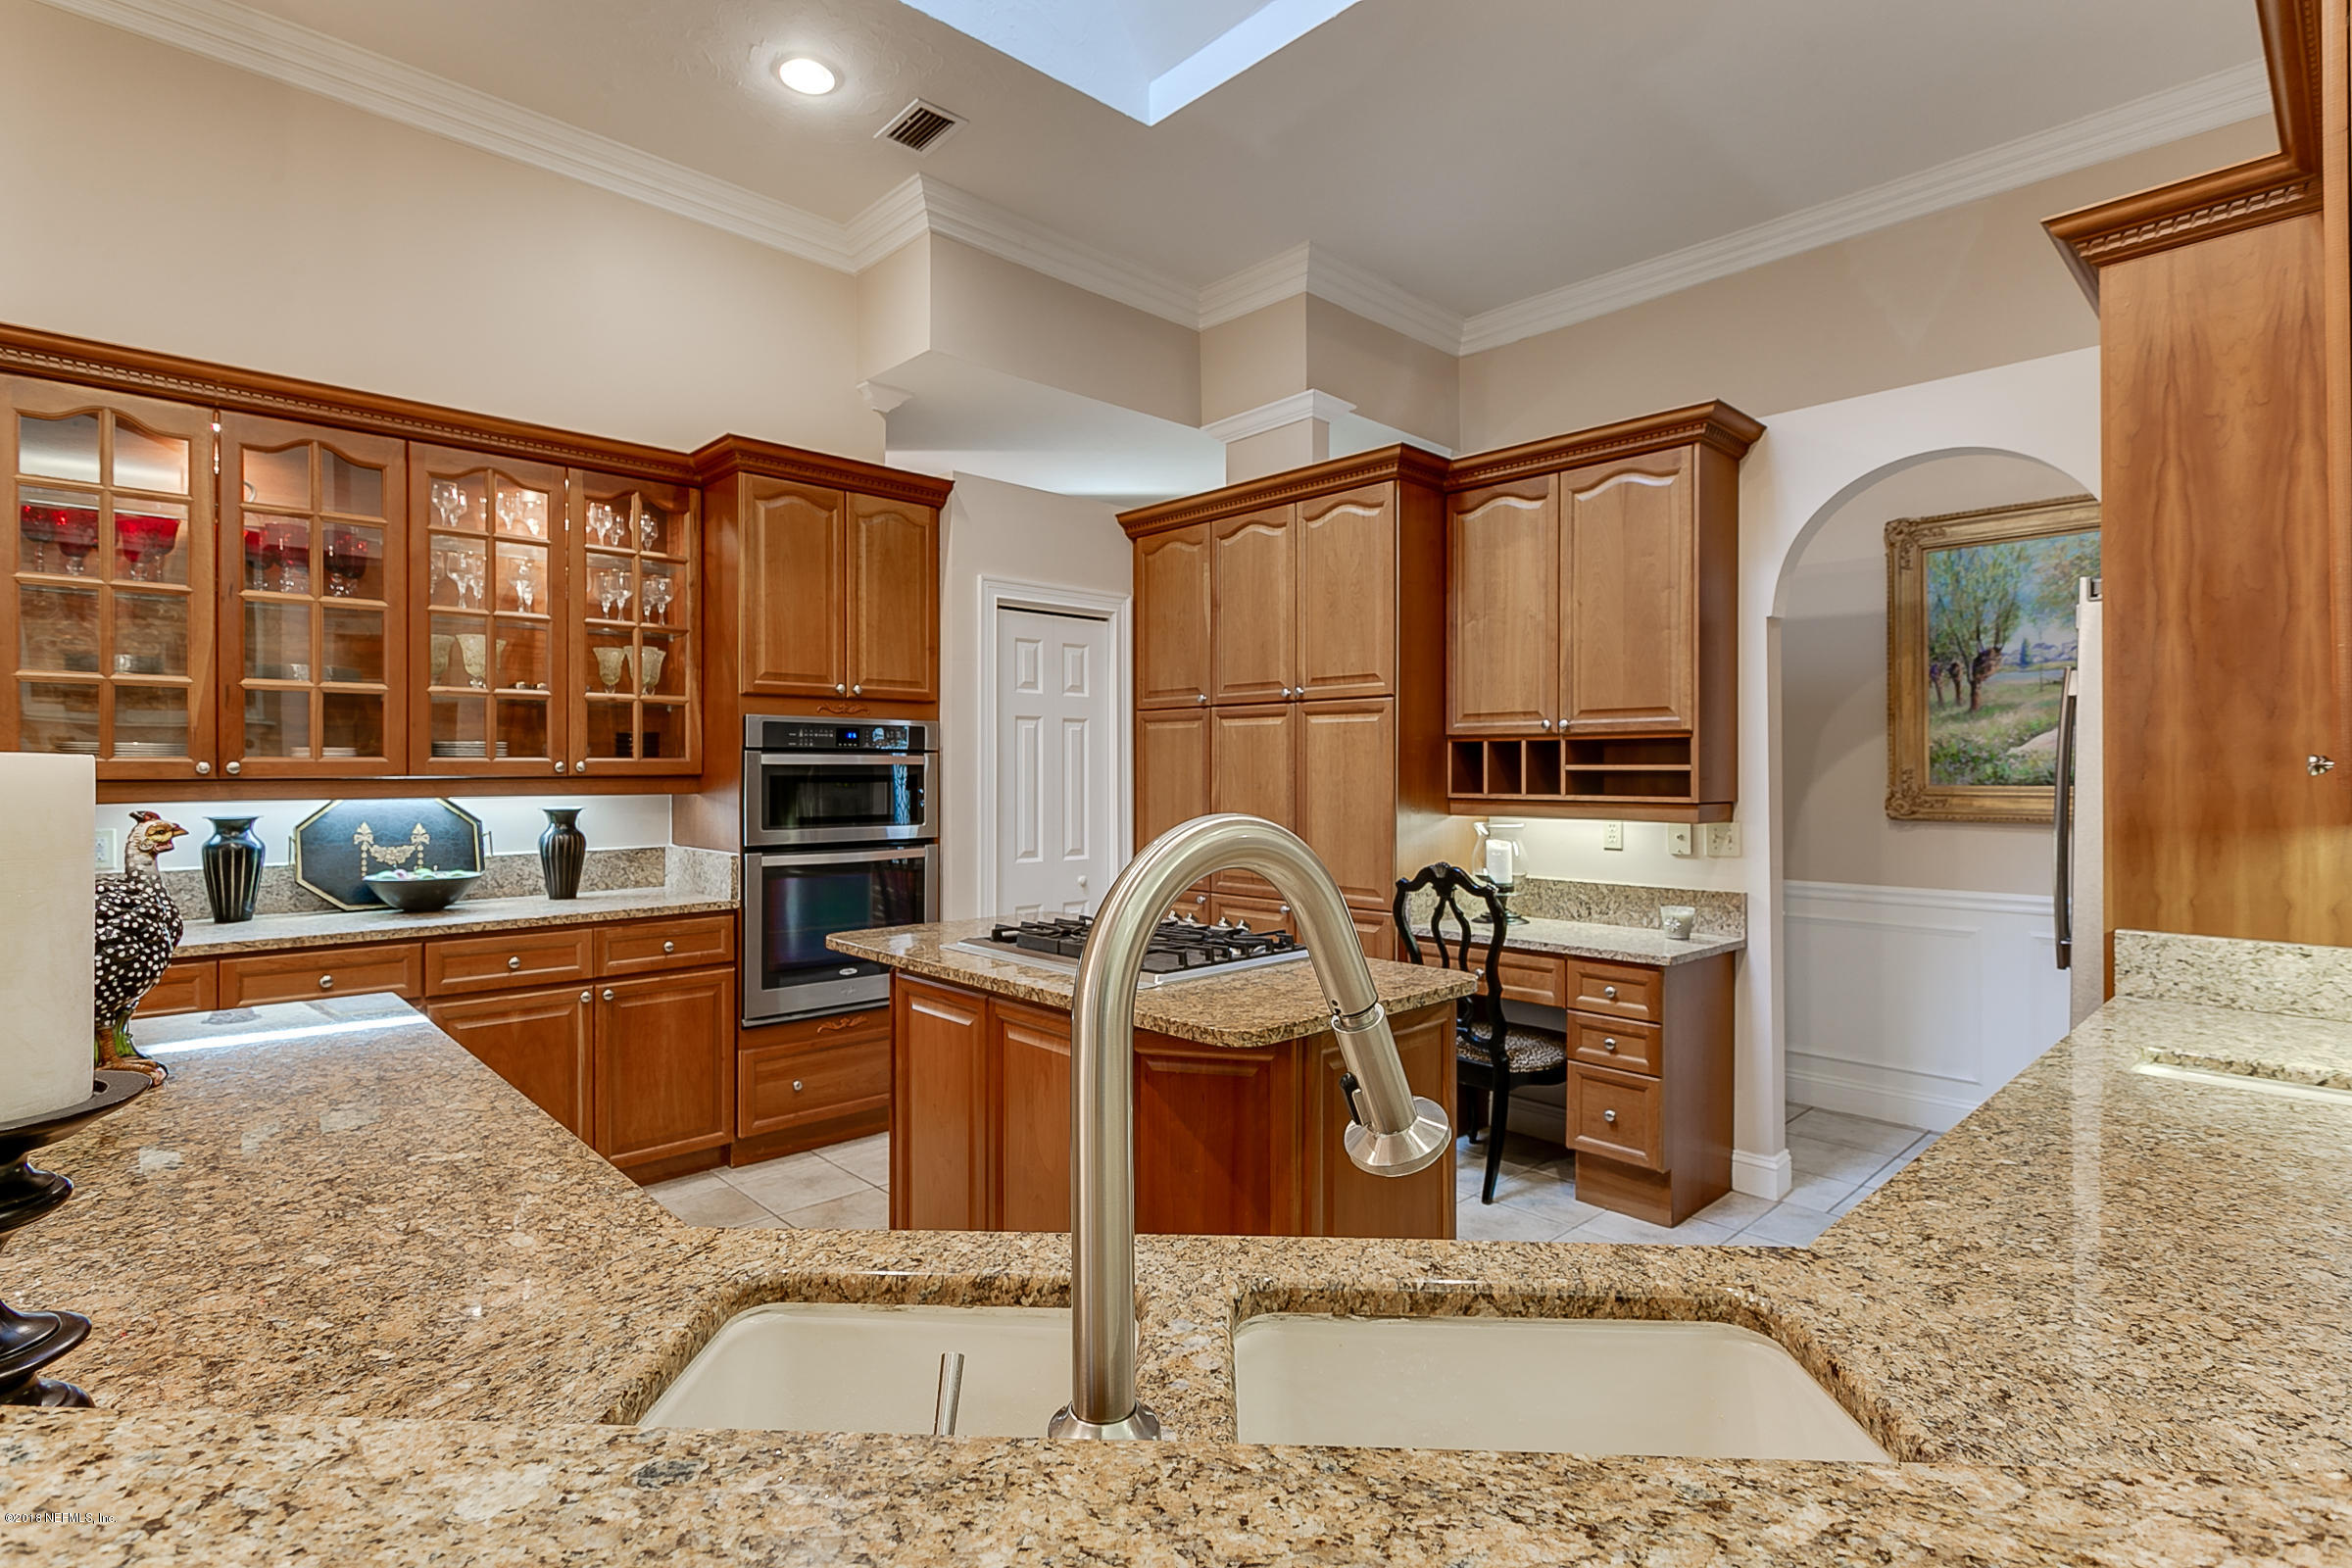 1739 COLONIAL, GREEN COVE SPRINGS, FLORIDA 32043, 4 Bedrooms Bedrooms, ,3 BathroomsBathrooms,Residential - single family,For sale,COLONIAL,965435